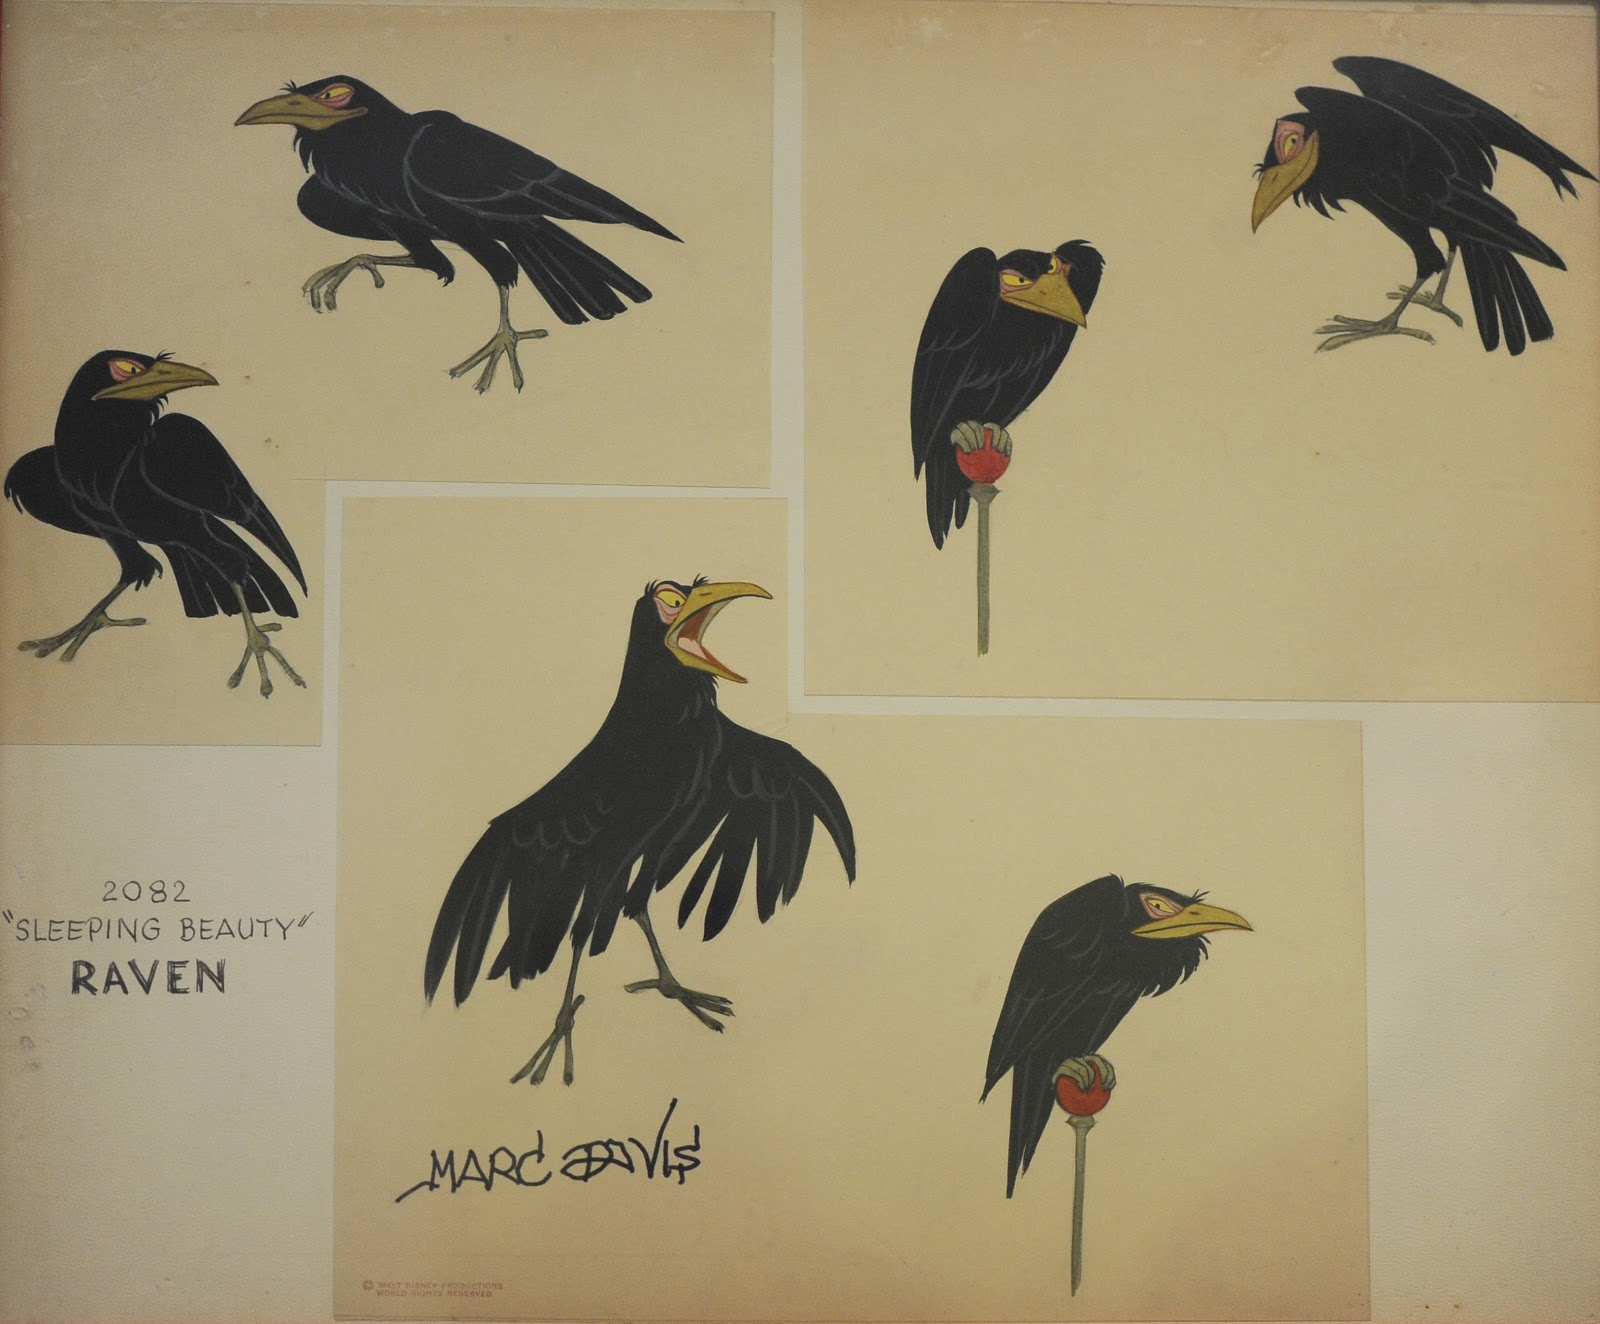 Drawn raven maleficent About Crows Ravens – in